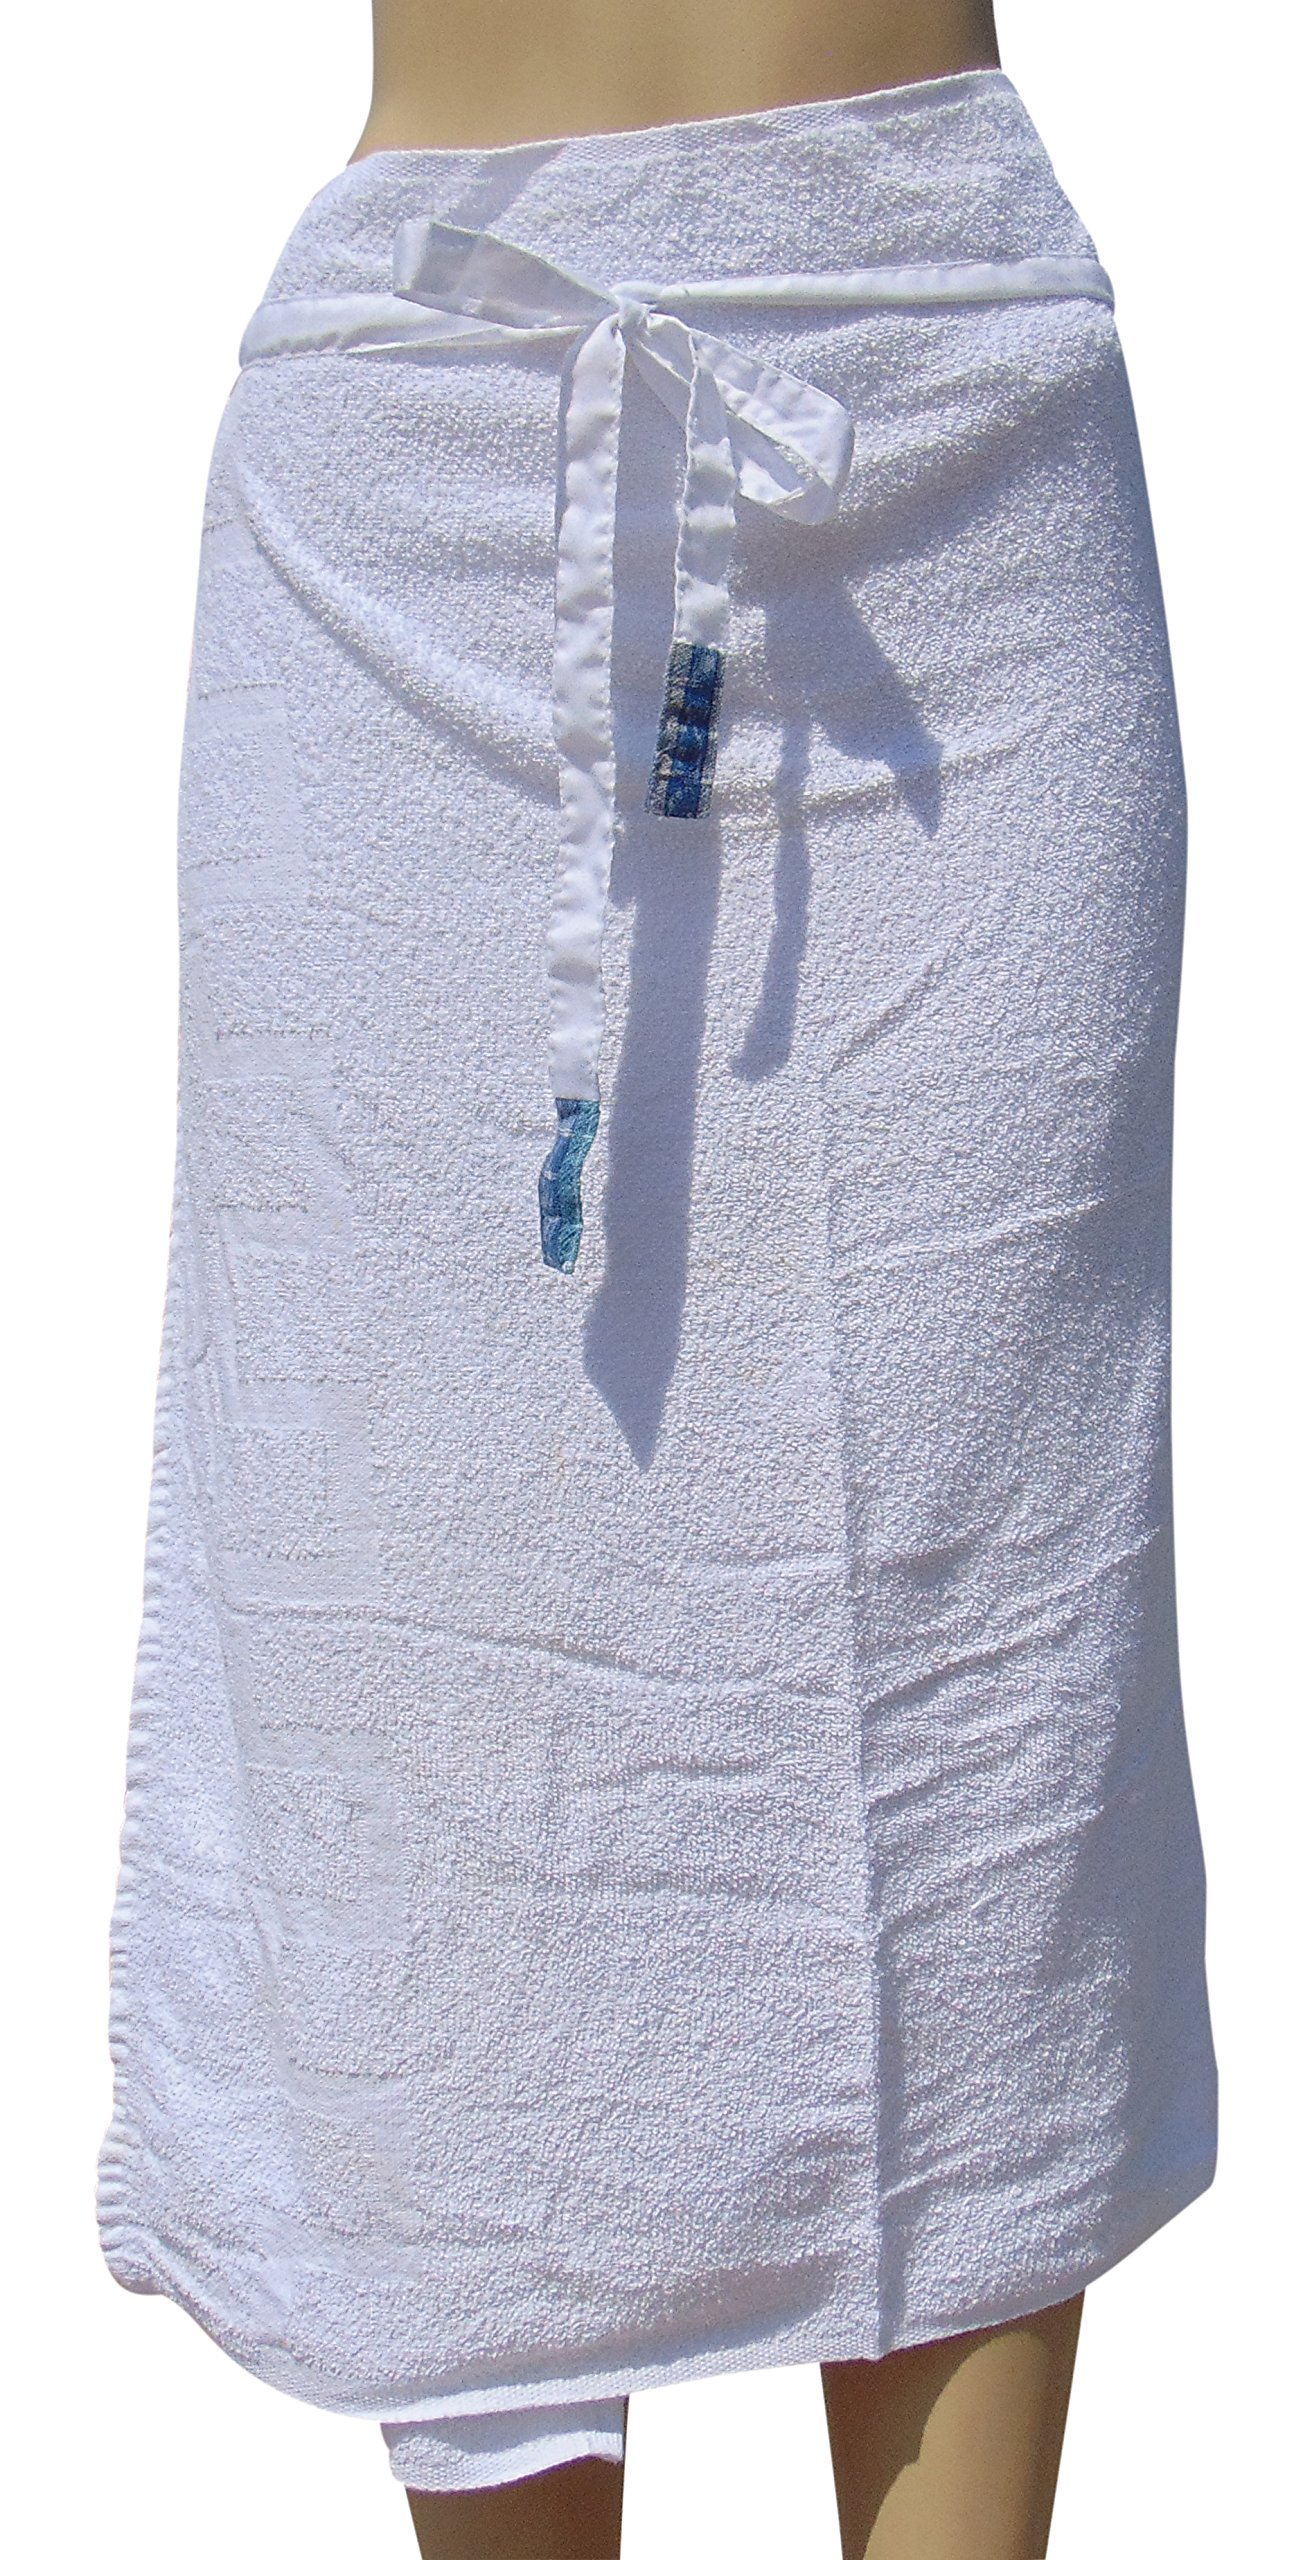 Thai Style Beach Towel - 100% Pure Cotton - Soft & Comfortable With Waist Straps| Easy to Wash & White Colour - Hobo Traveler.com by HoboTraveler.com